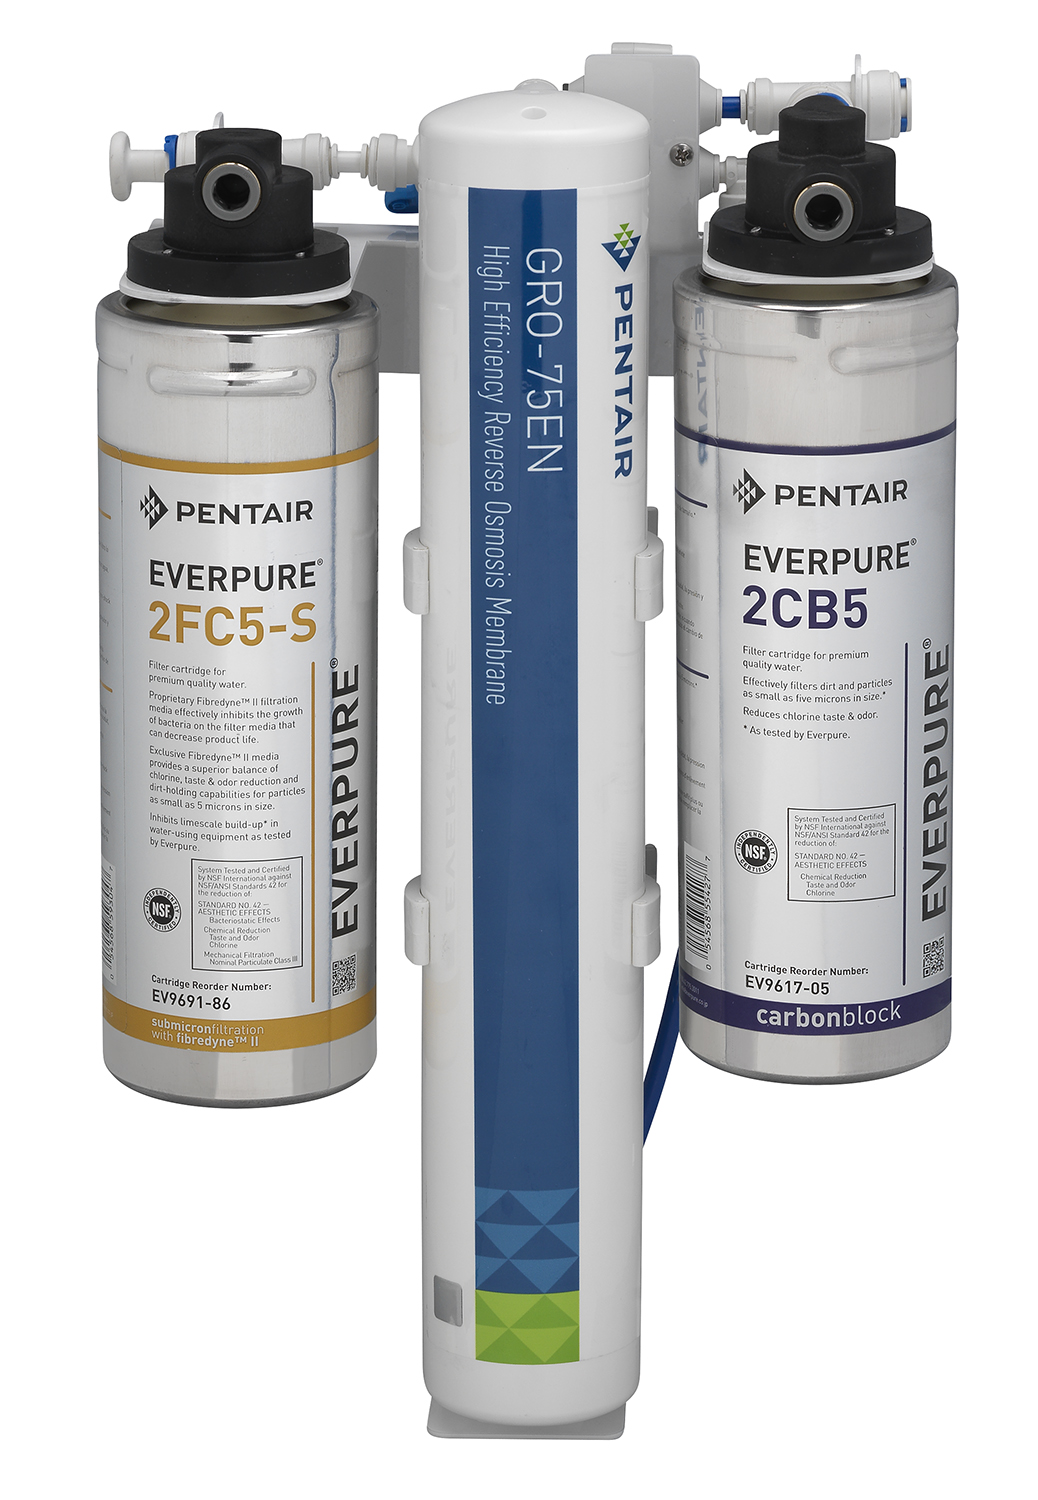 Everpure LVRO-75HE Reverse Osmosis System